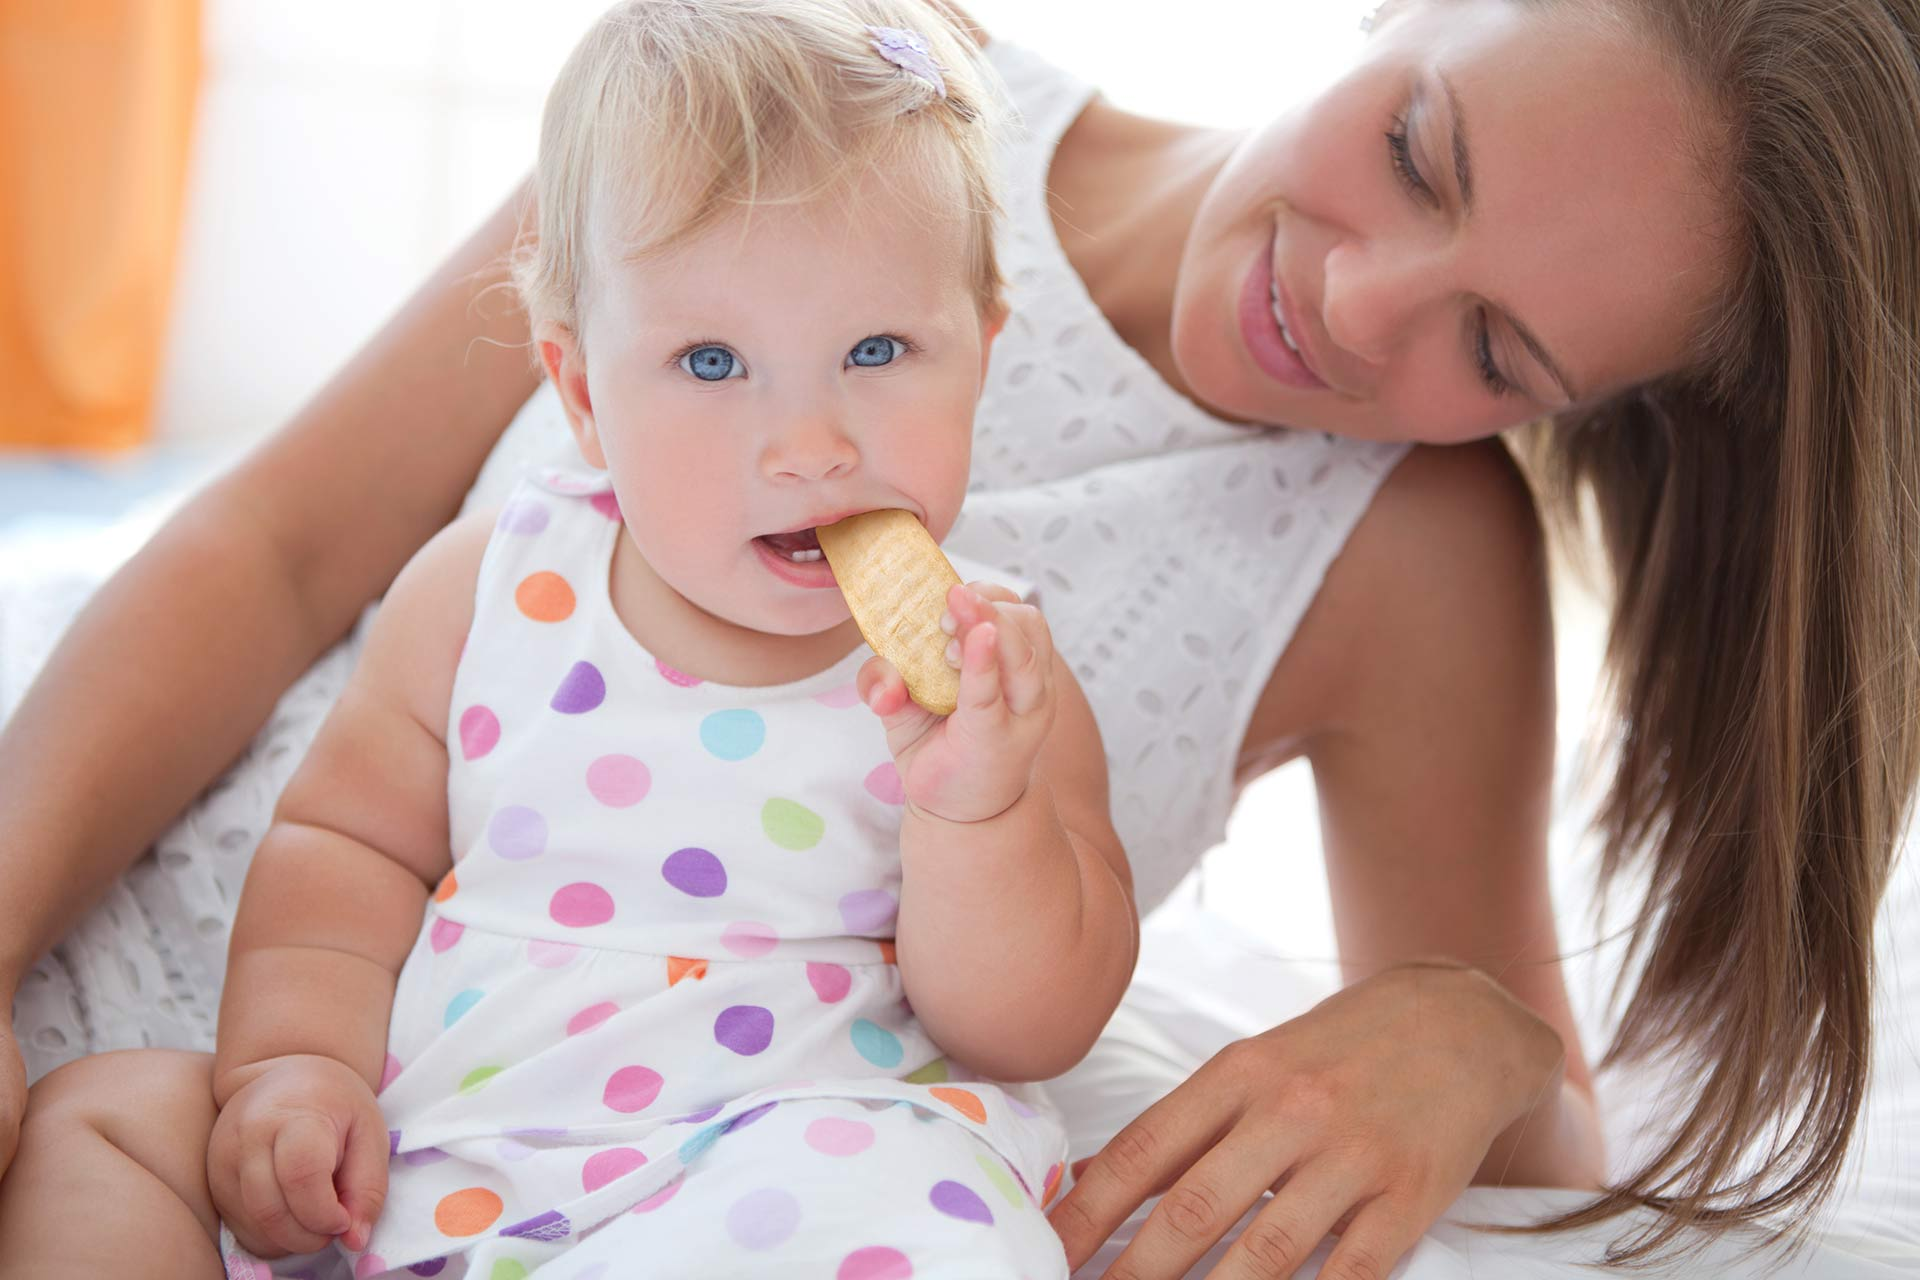 Image for selection - iStock-171380787_Rice_Rusk-min.jpg